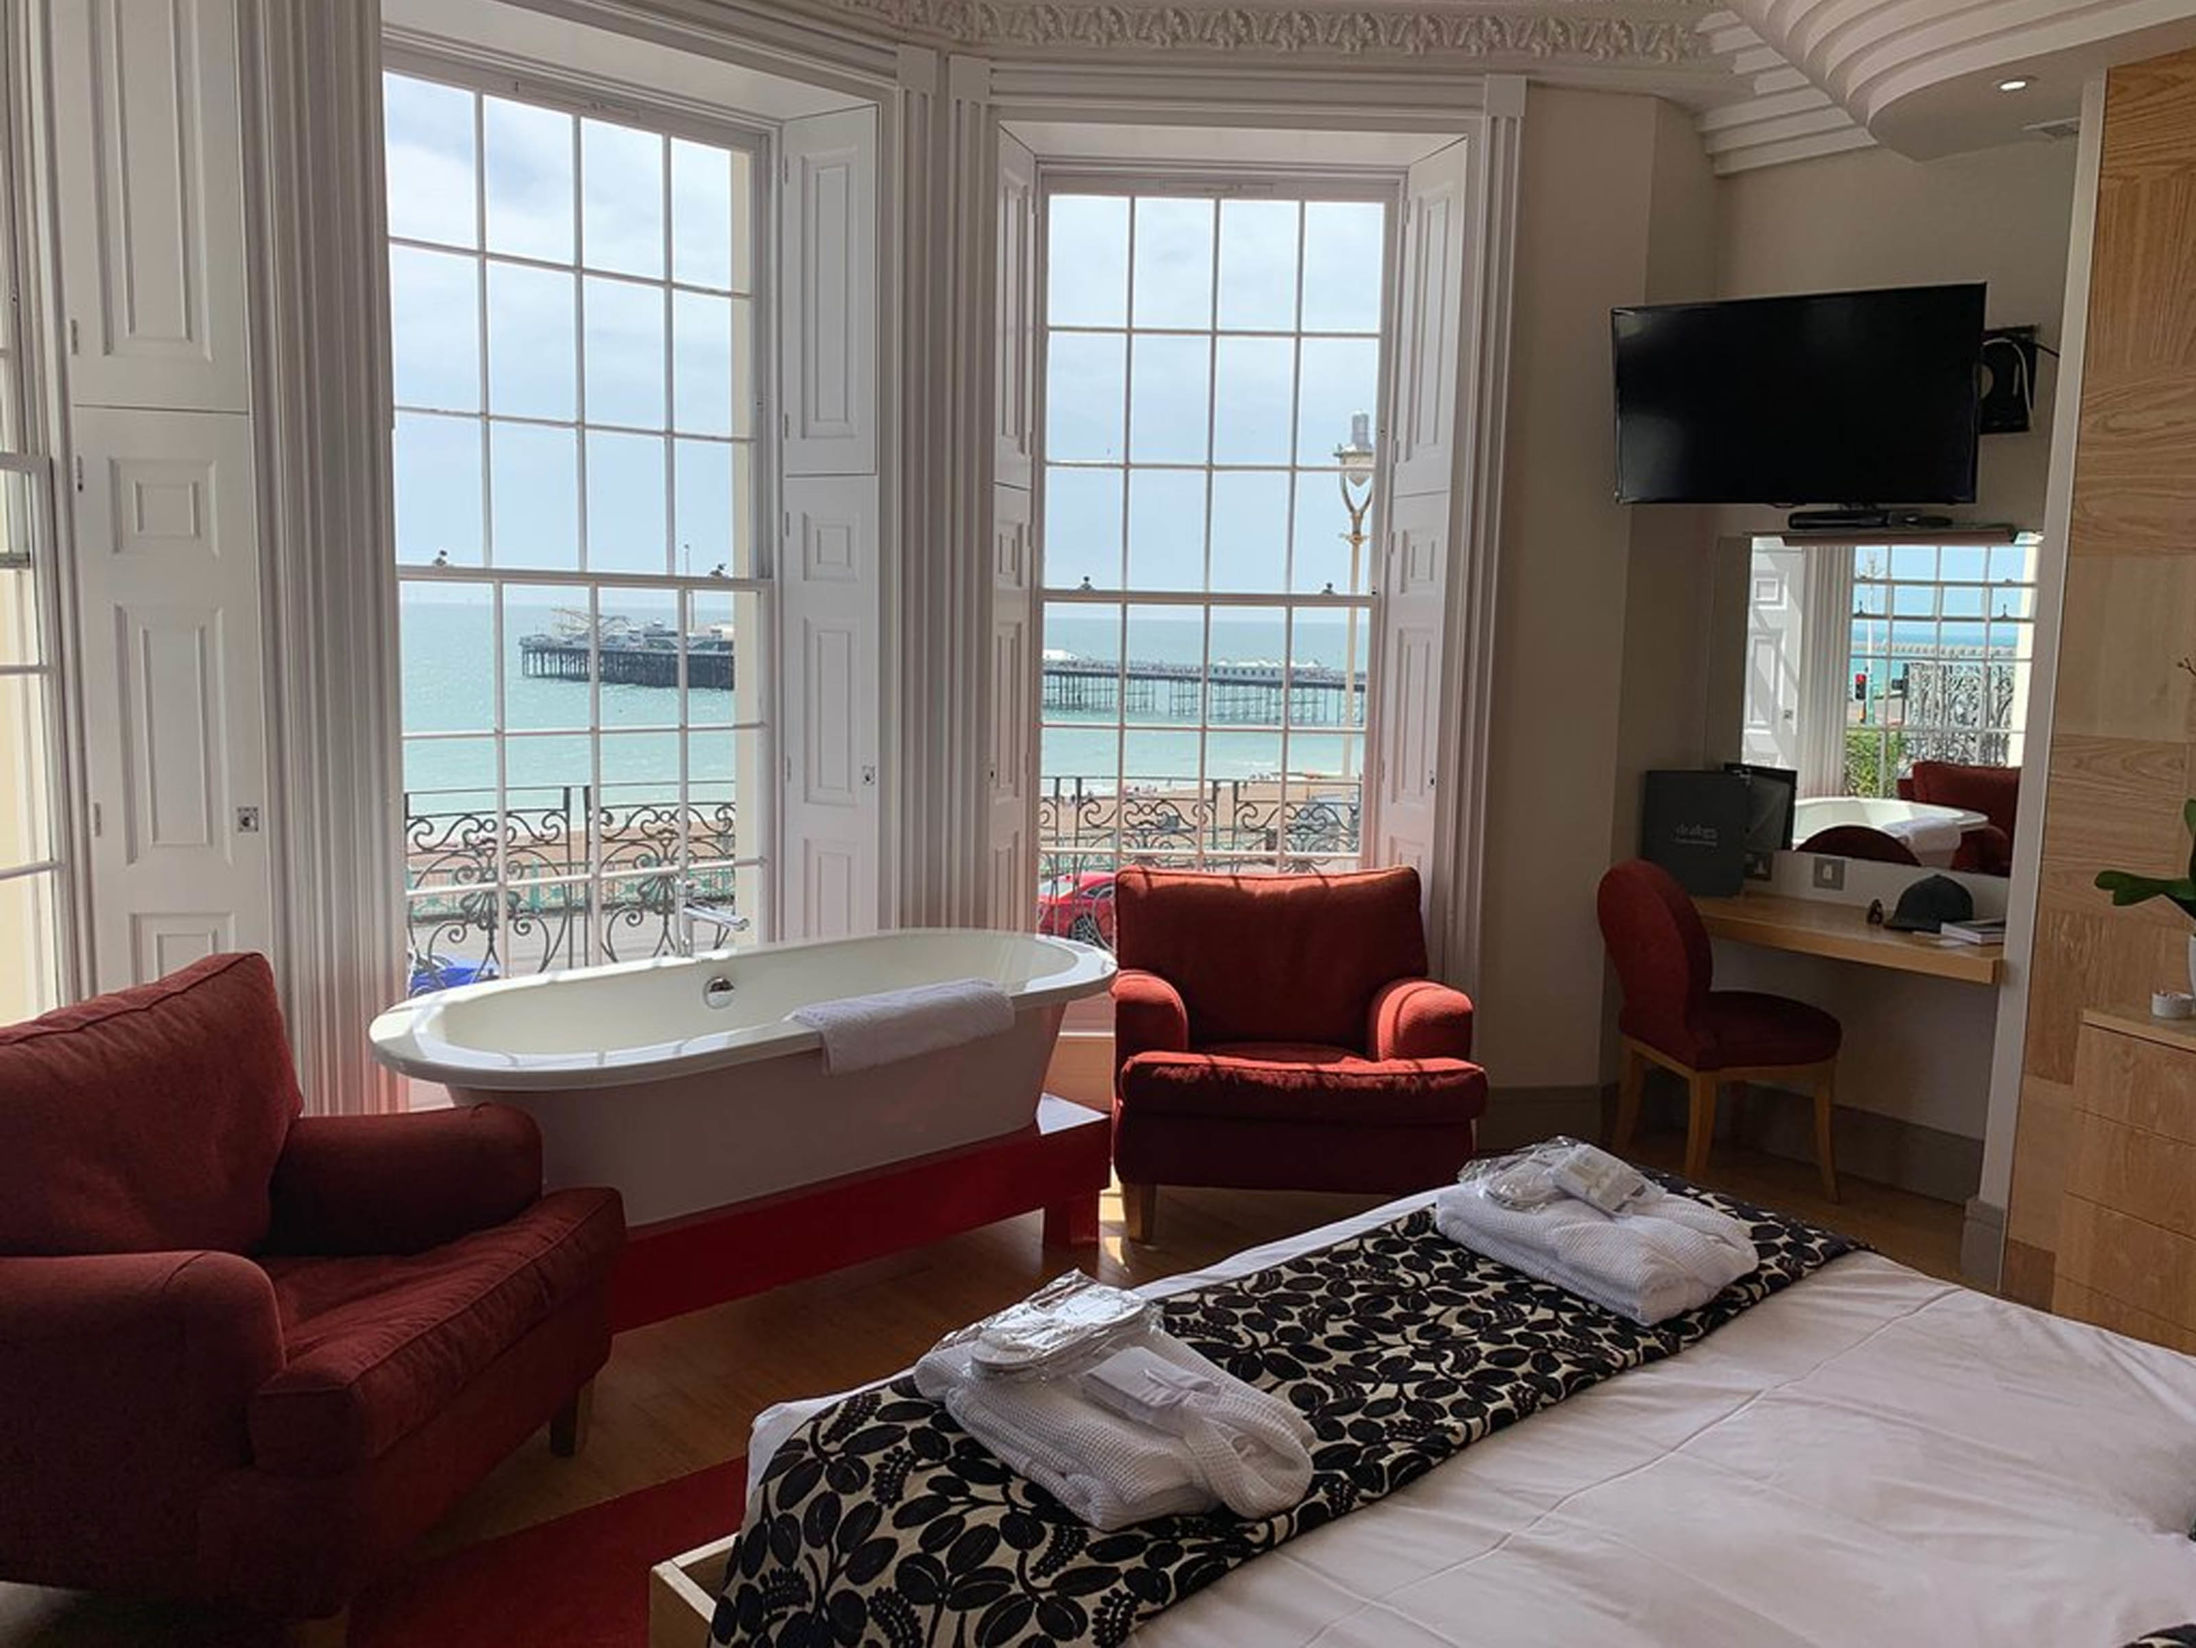 Best Hotels in Brighton Drakes Hotel